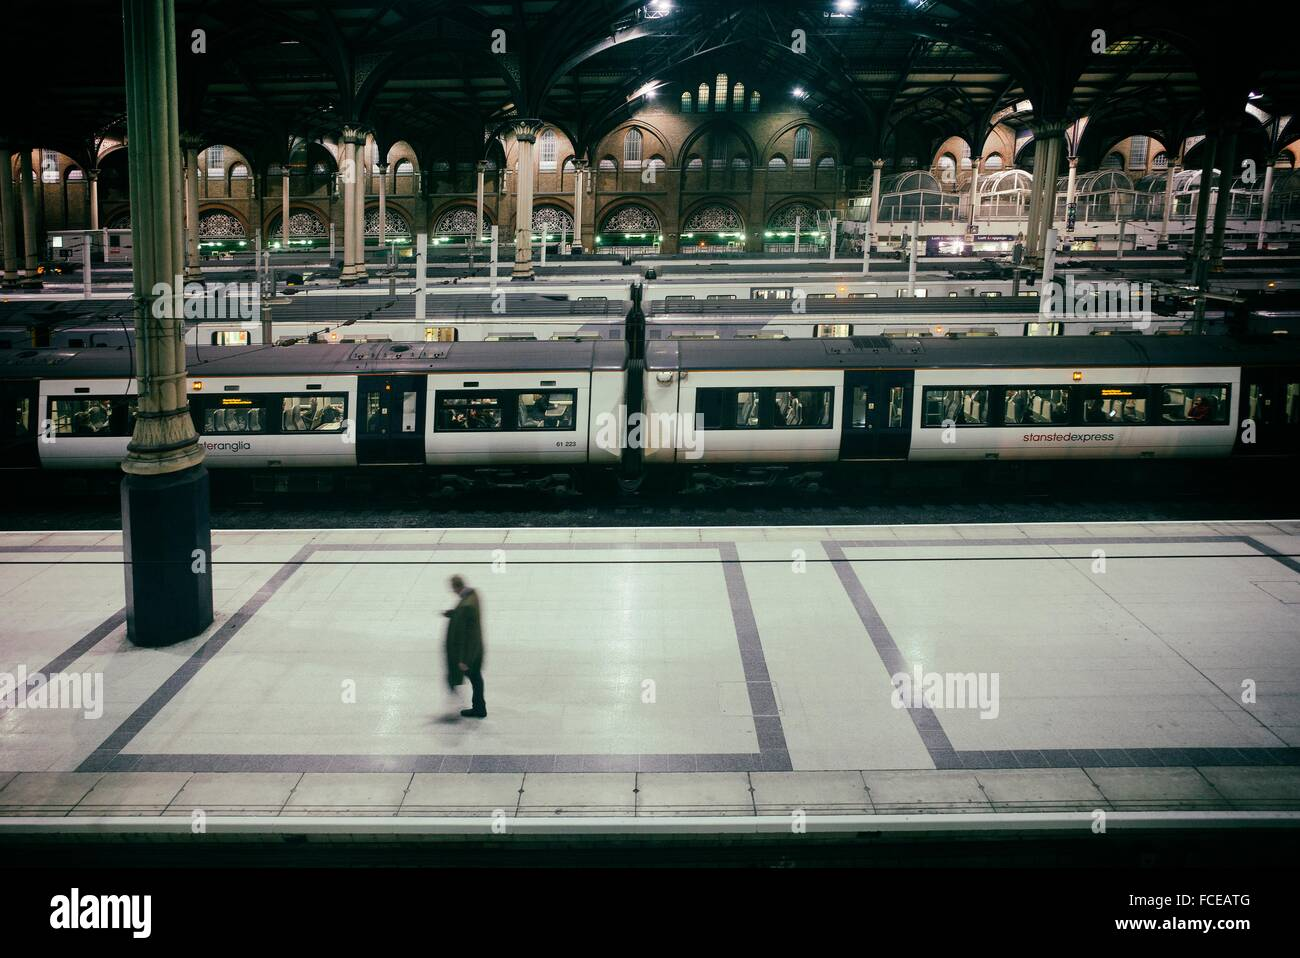 An unrecognizable man, walking down one platform in Liverpool Street train station, with several trains at the background. - Stock Image